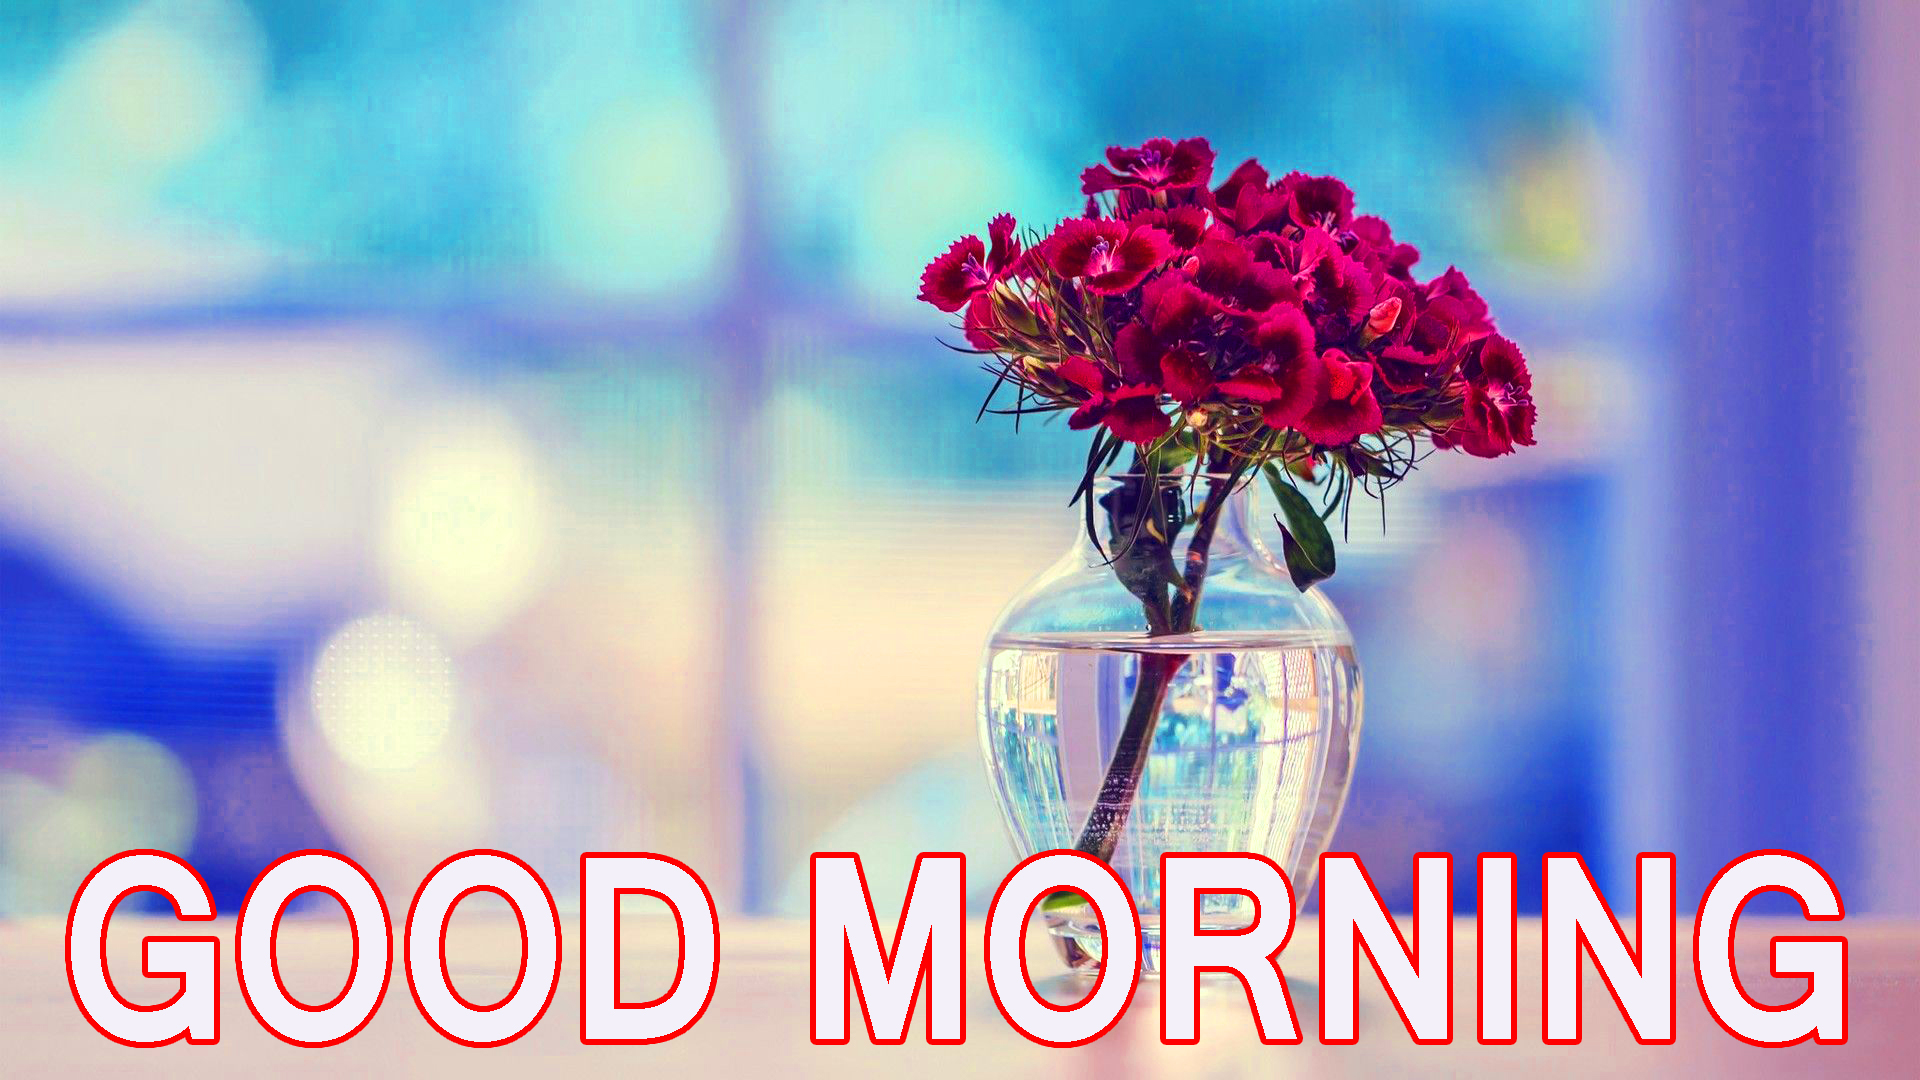 All Good Morning Images Pictures collection -